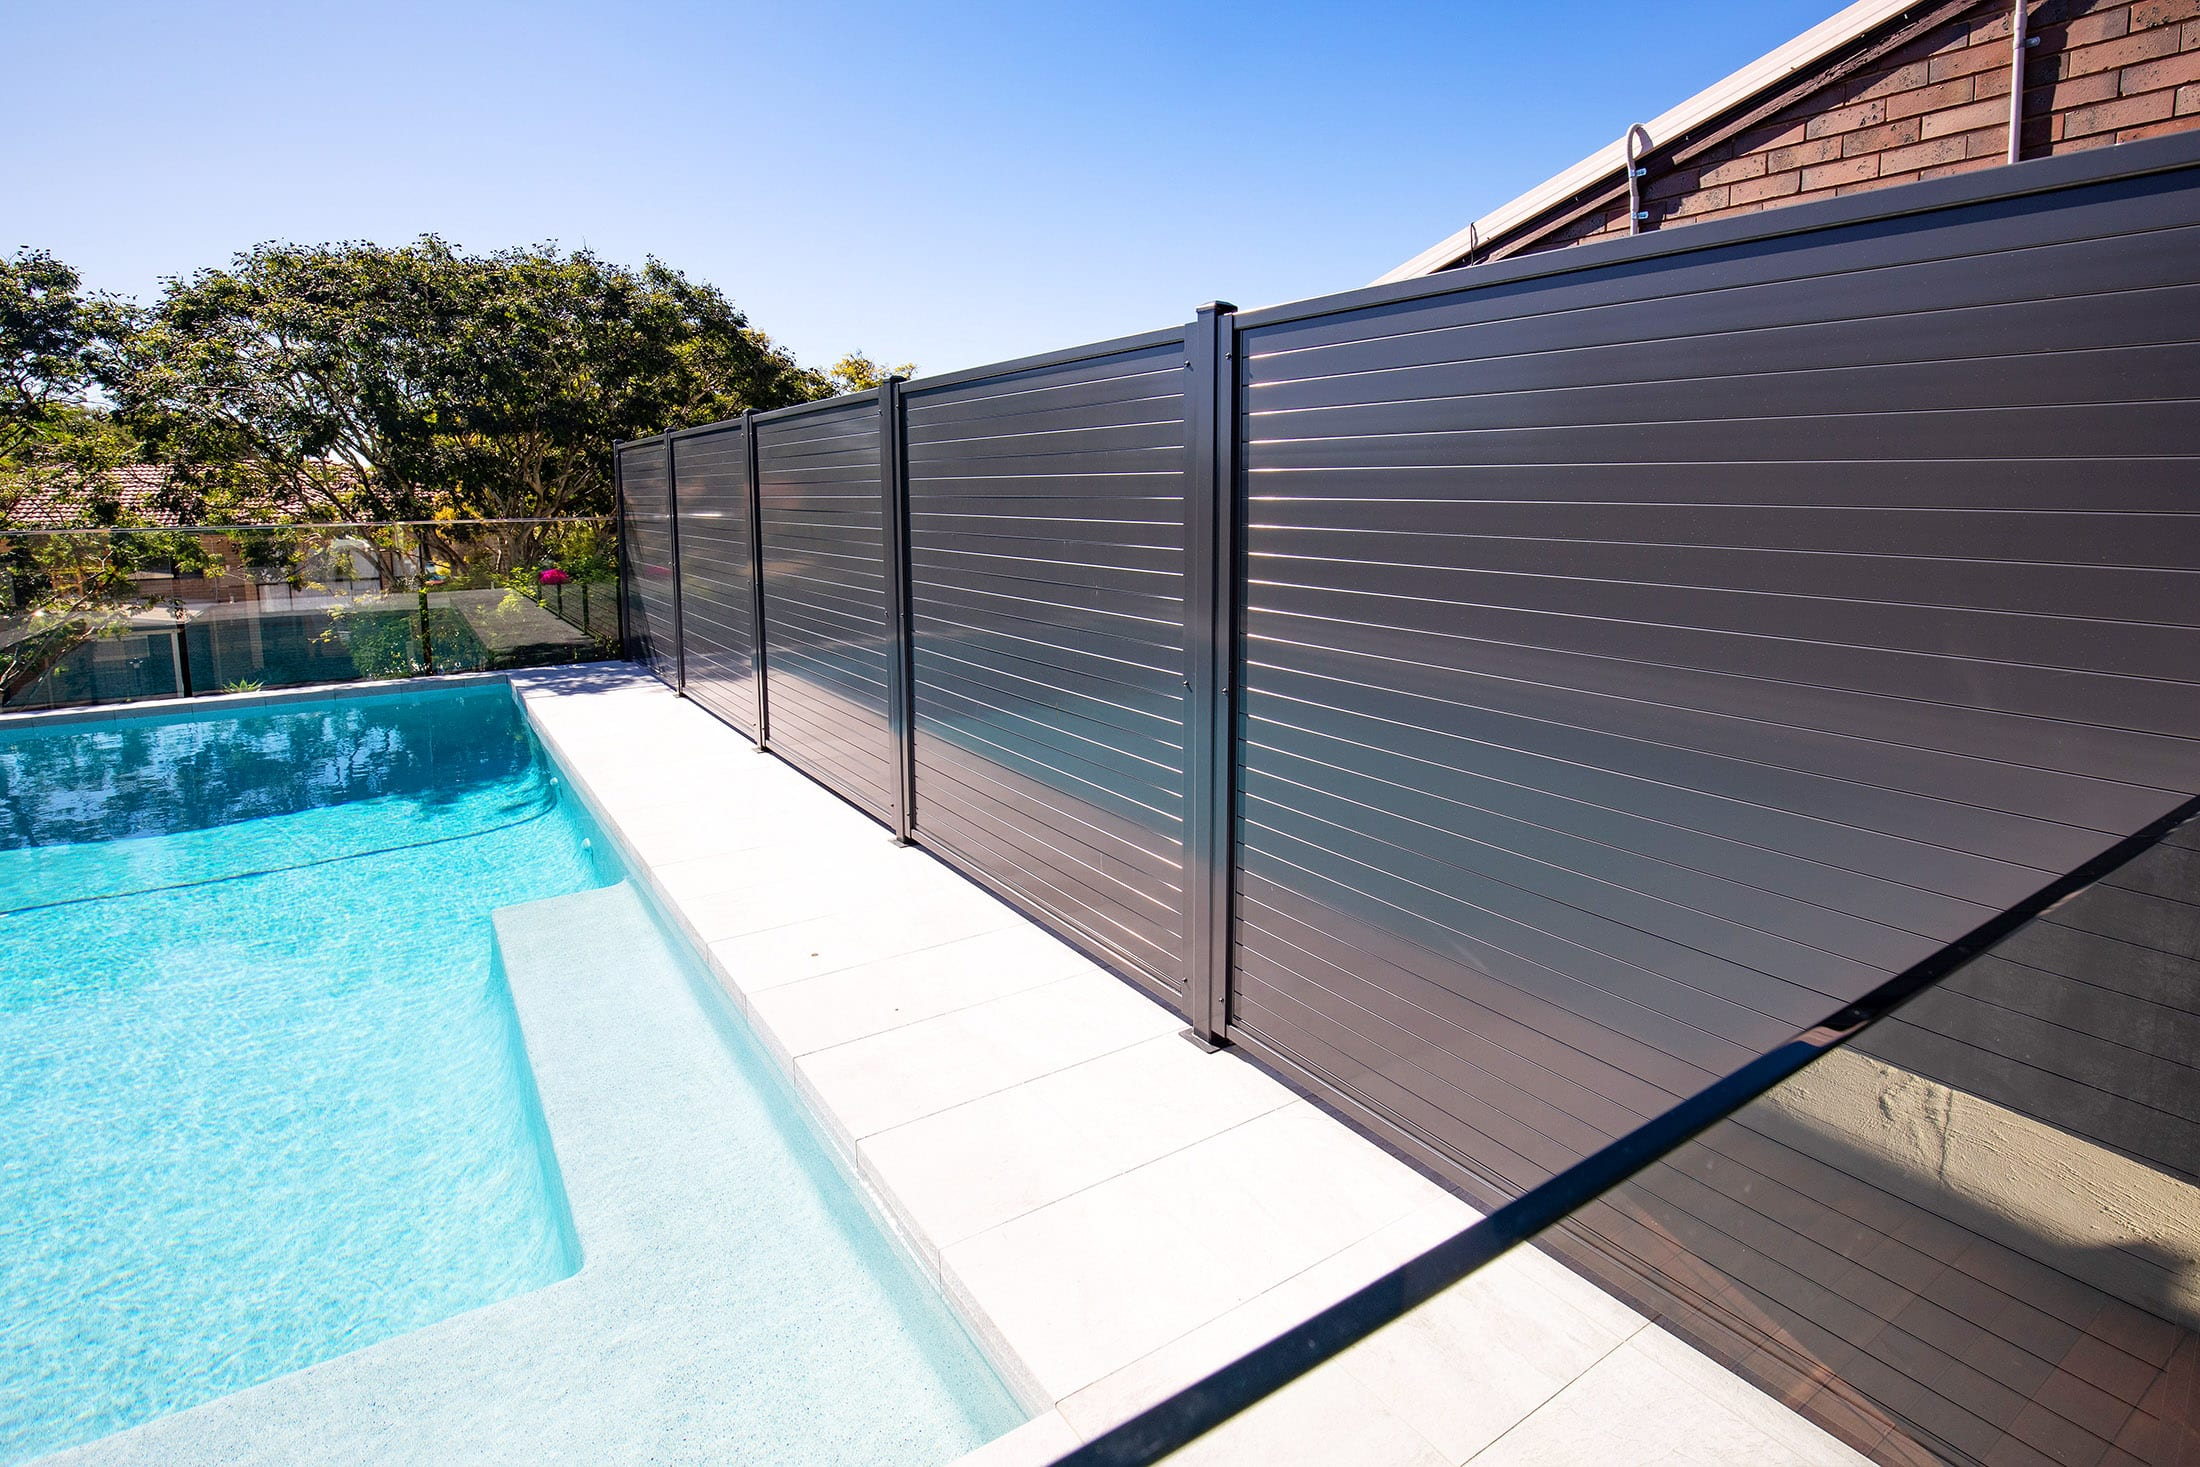 Pool privacy screen